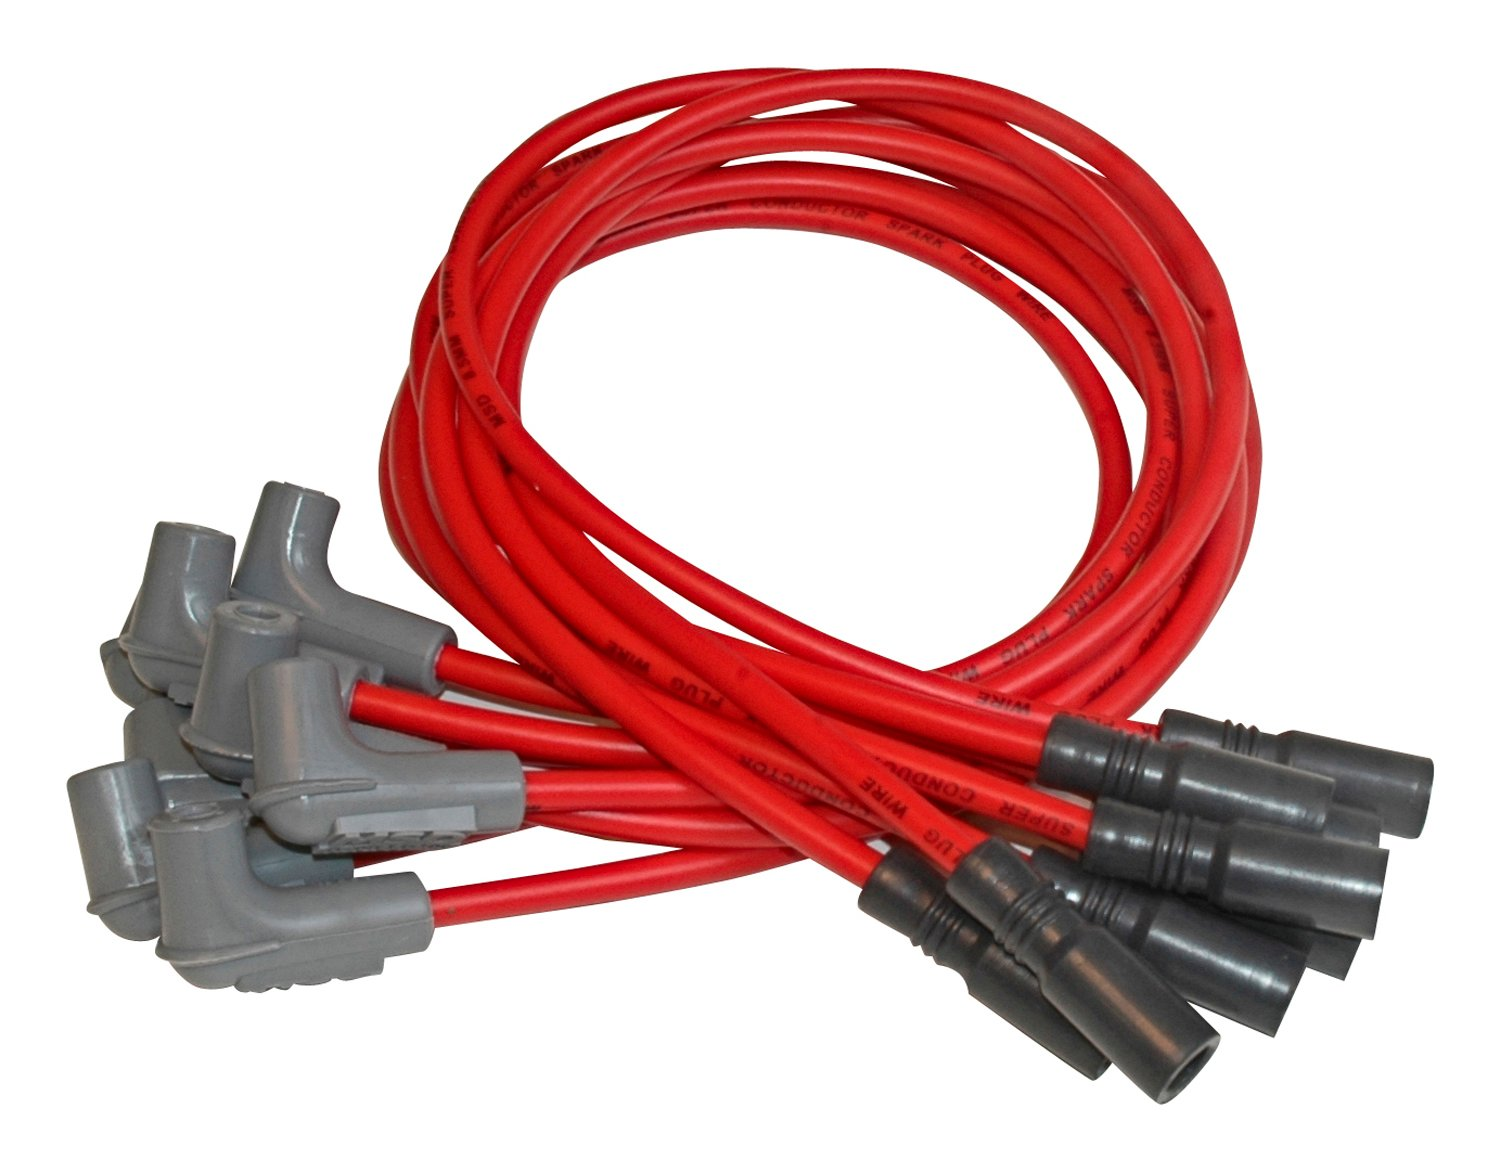 32149 Which Spark Plug Wires Go Where on gas grill ignitor wires, spark ignition, spark plugs brands, spark pug, coil wires, short circuit wires, spark plugs location diagram, spark plugs for dodge hemi, spark plugs 2006 pacifica, spark plugs 2003 dakota, spark plugs on, ignition wires, spark screen, plugs and wires, spark plugs for toyota corolla, spark up meaning, spark plugs replacement, wire separators for 8mm wires, spark indicator, spark plugs awsf 32pp,